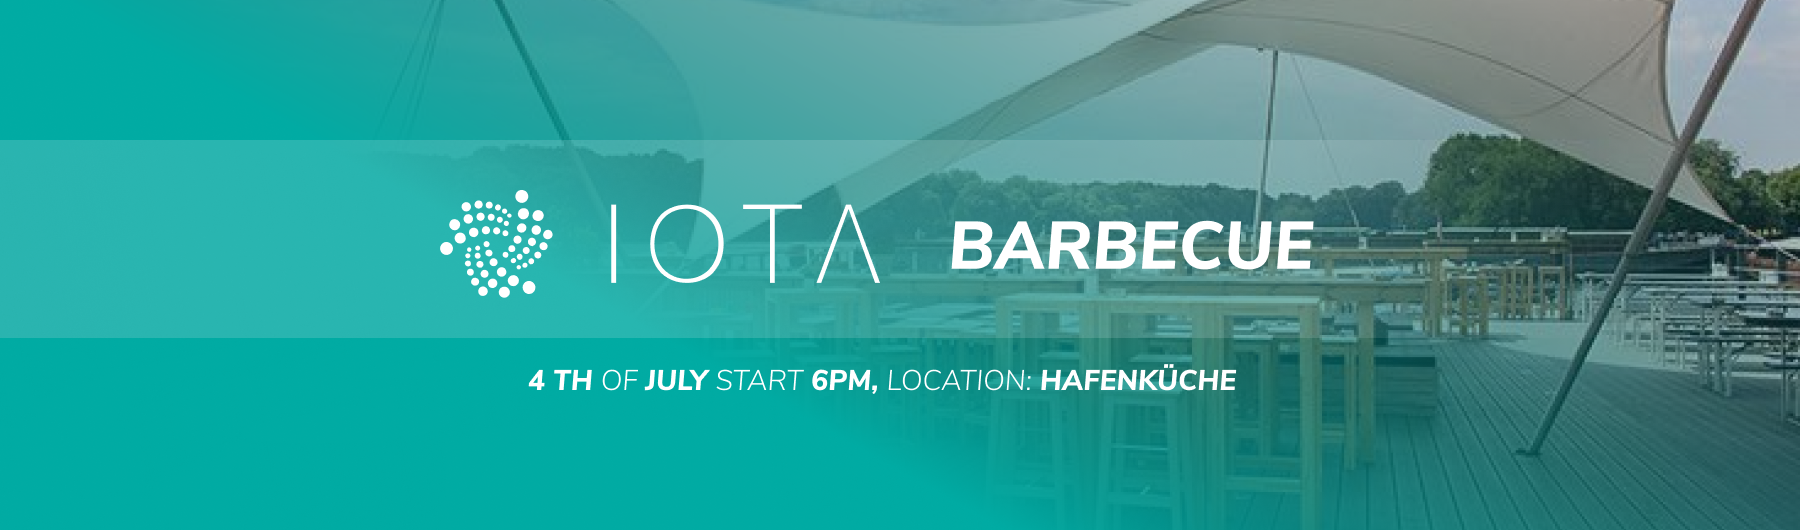 IOTA Barbecue - how Distributed Ledger Technology shapes our future